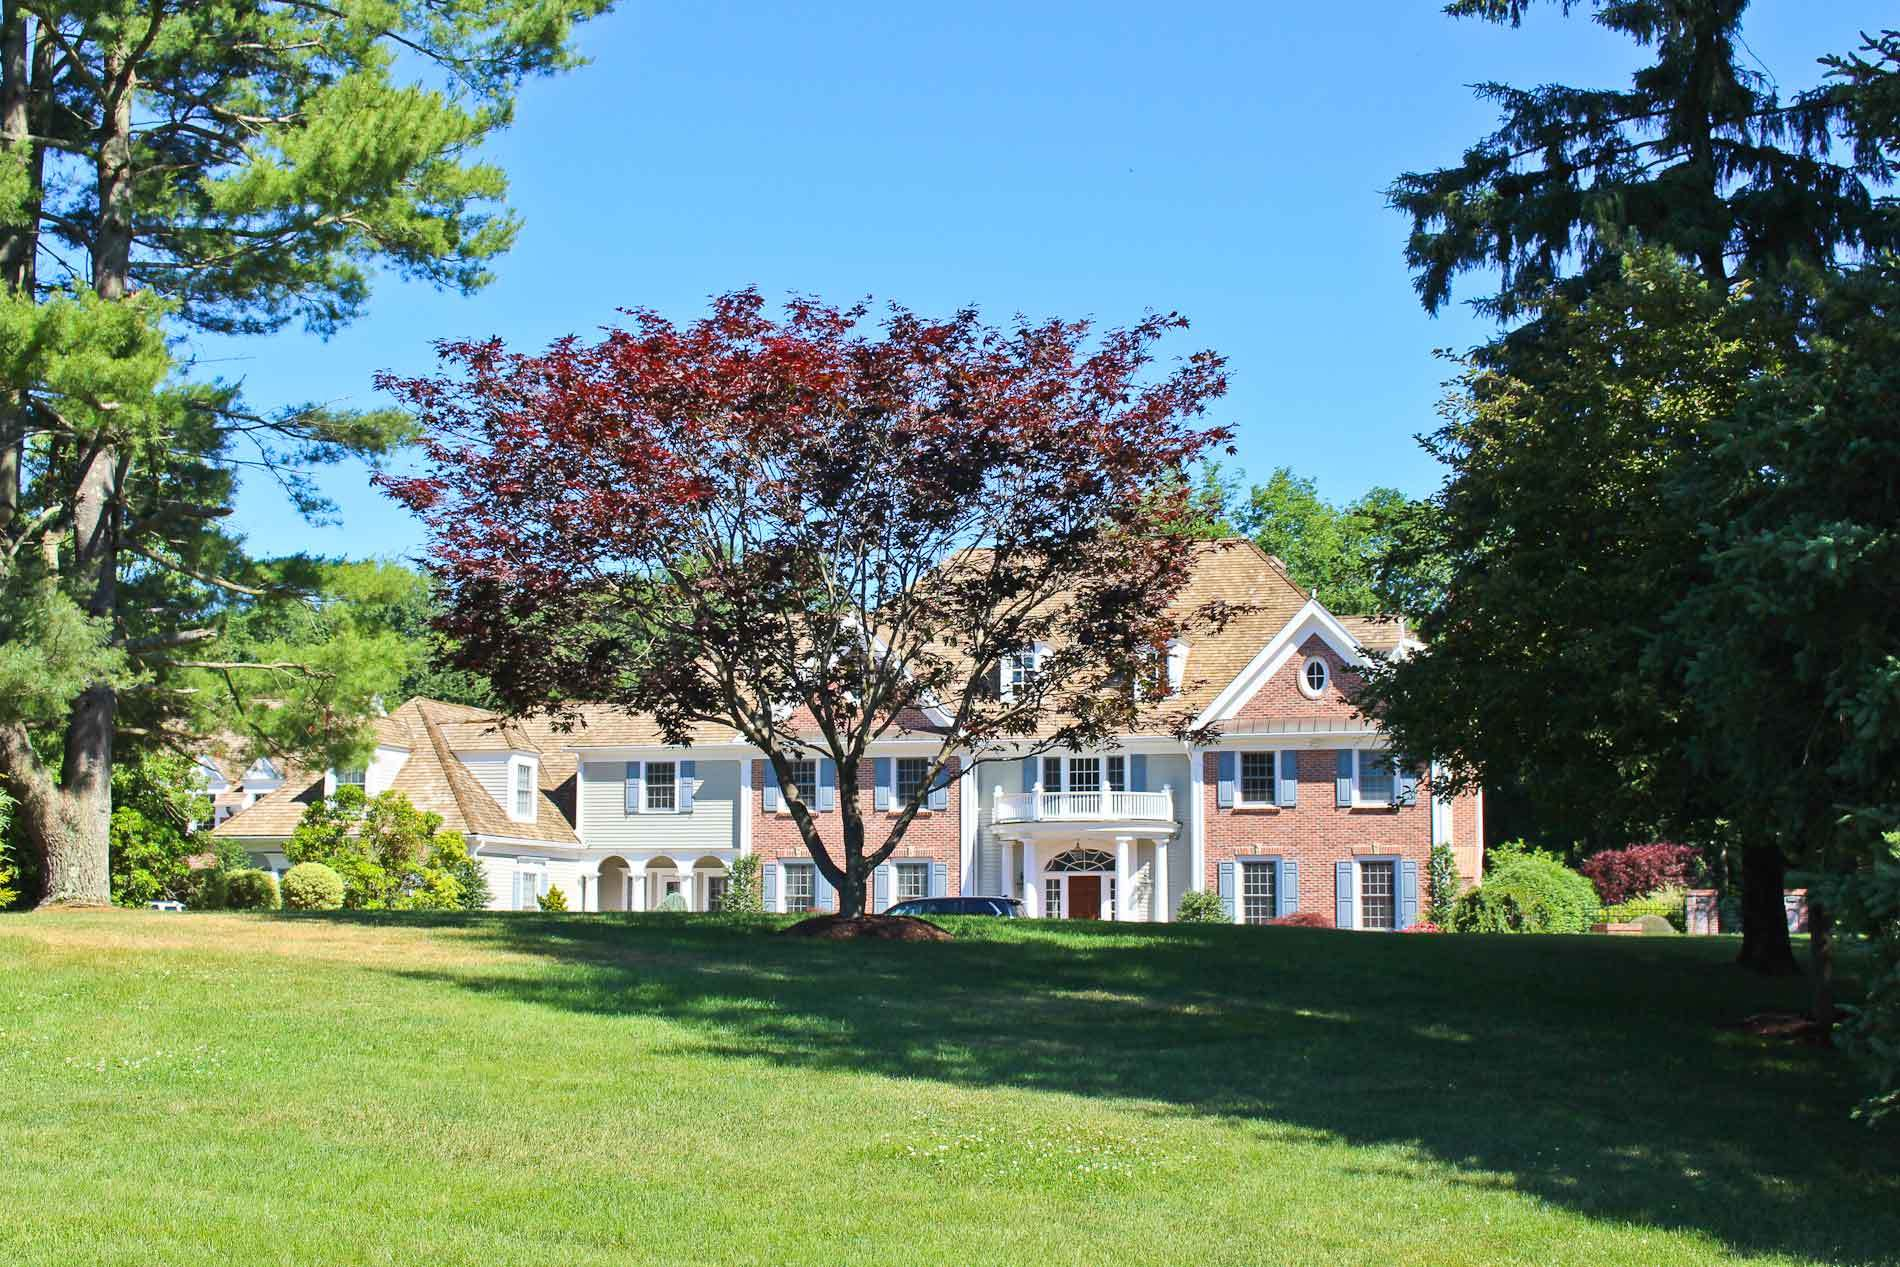 Mansions for Sale in Wilton CT 06897